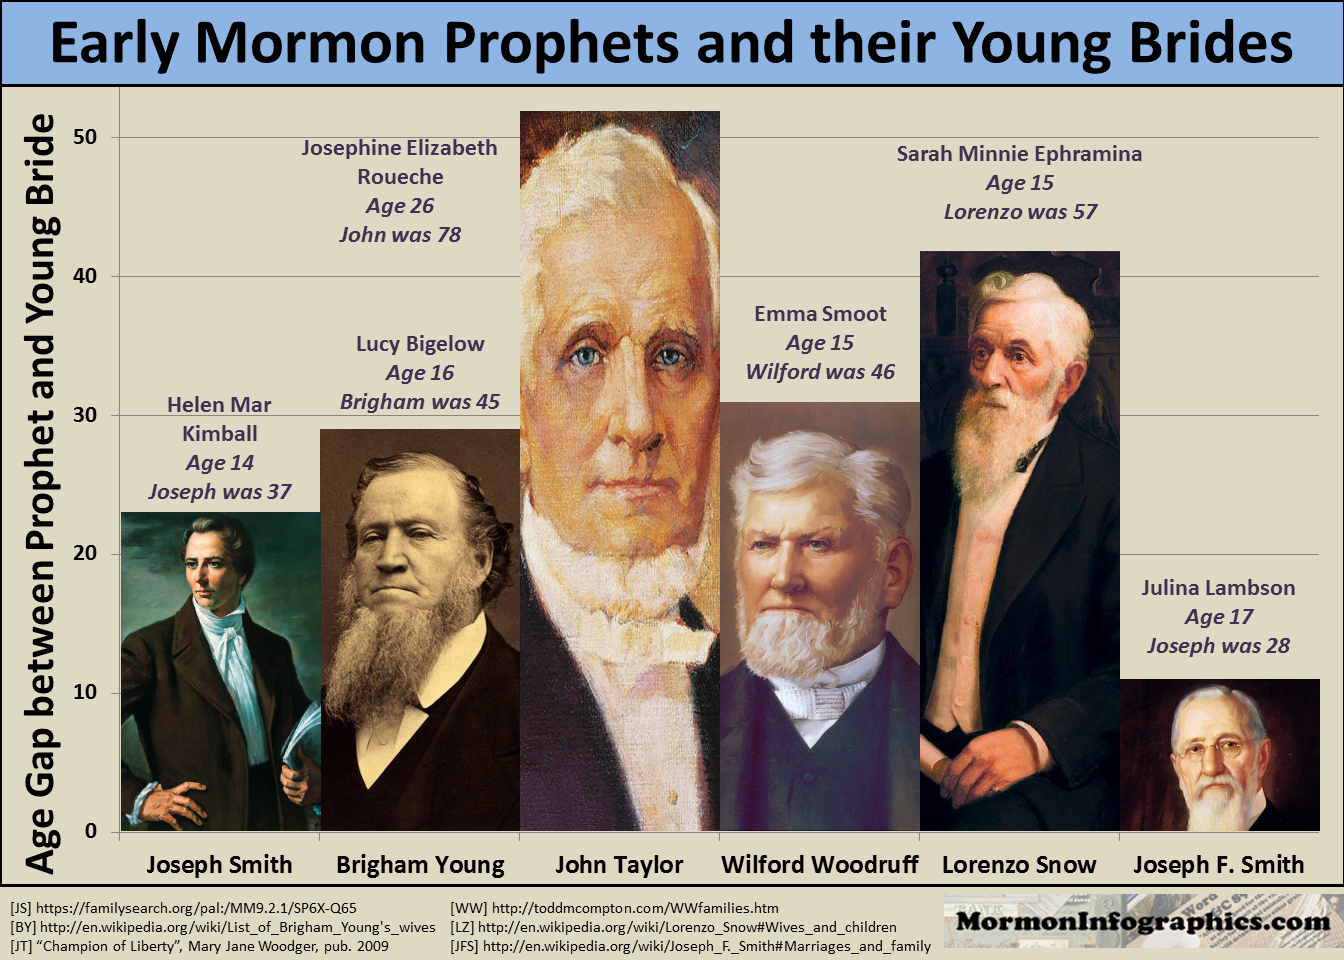 the history of mormon polygamy essay Polygamy, usually called plurality of wives, or the principle, by mormons, was once commanded of the lord for a very specific purpose at a critical time in history, and the law was divinely repealed in 1890.